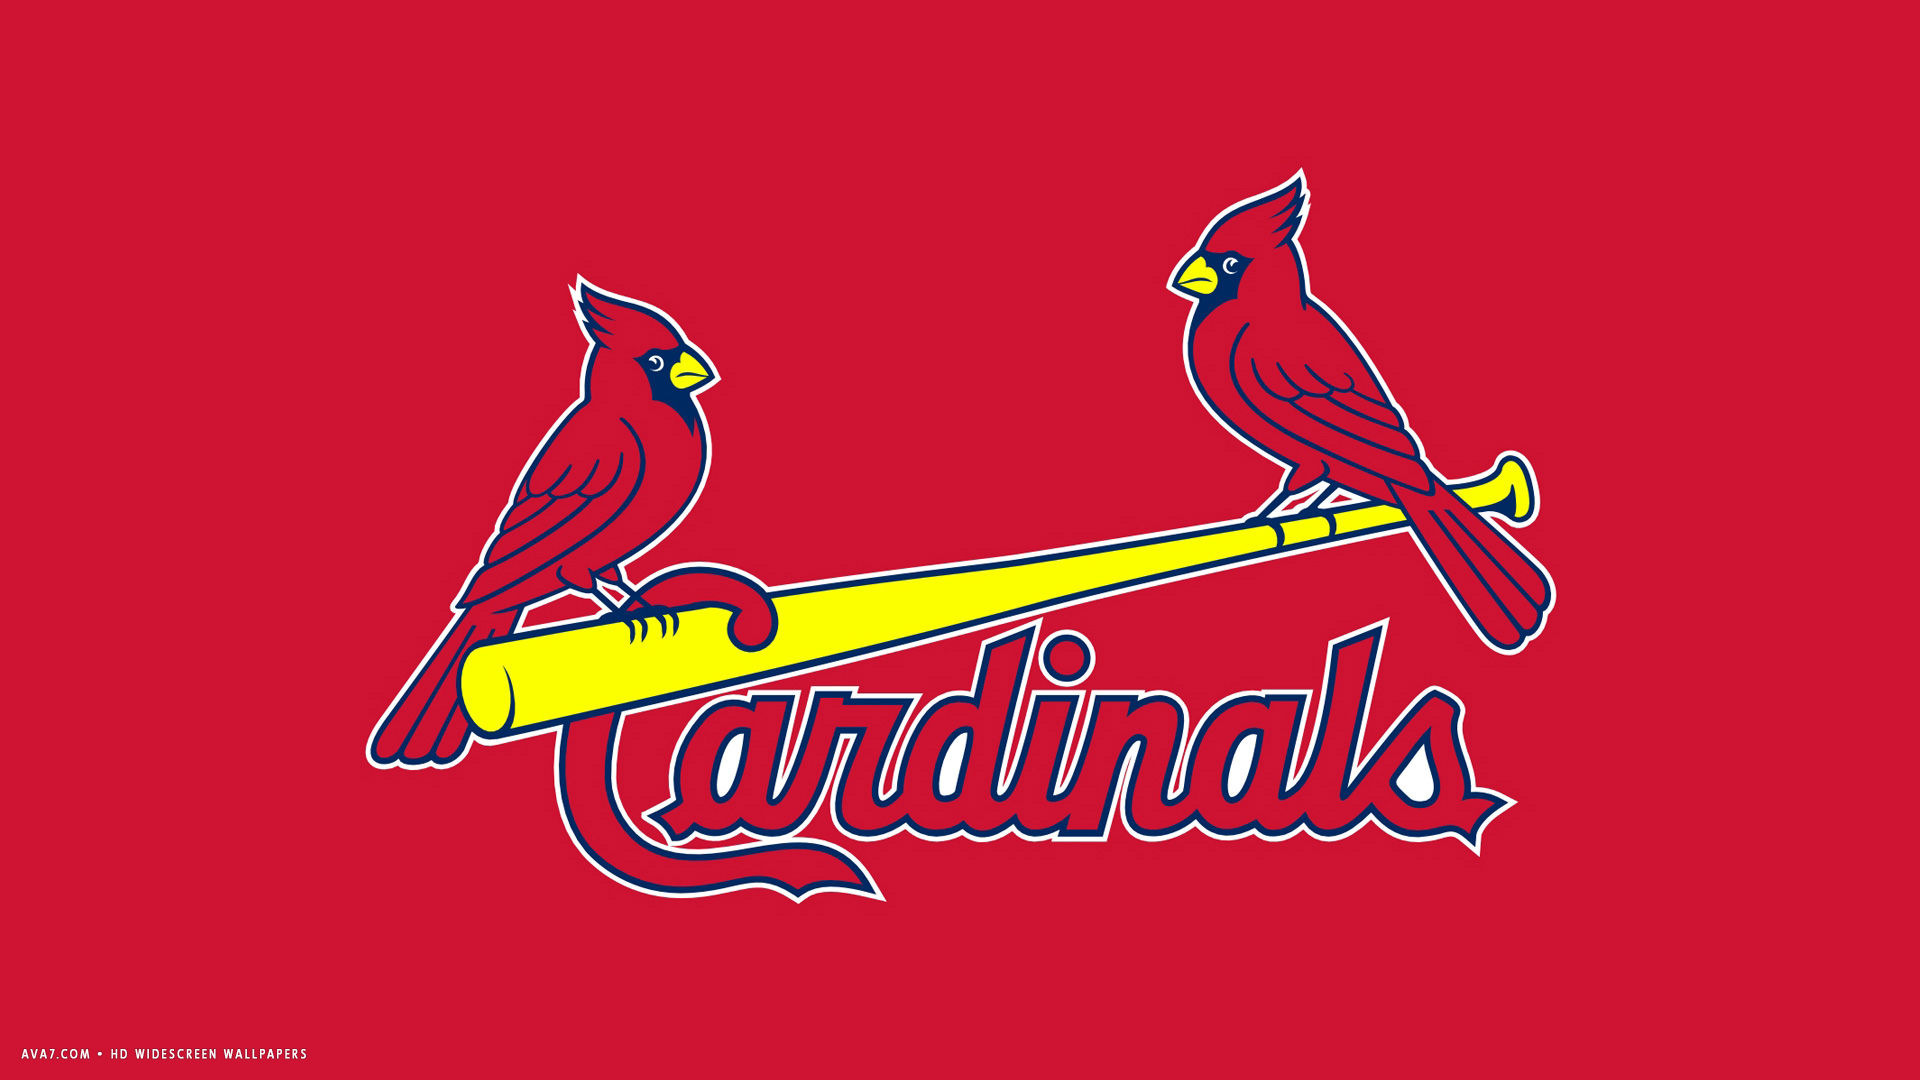 st louis cardinals mlb baseball team hd widescreen wallpaper 1920x1080